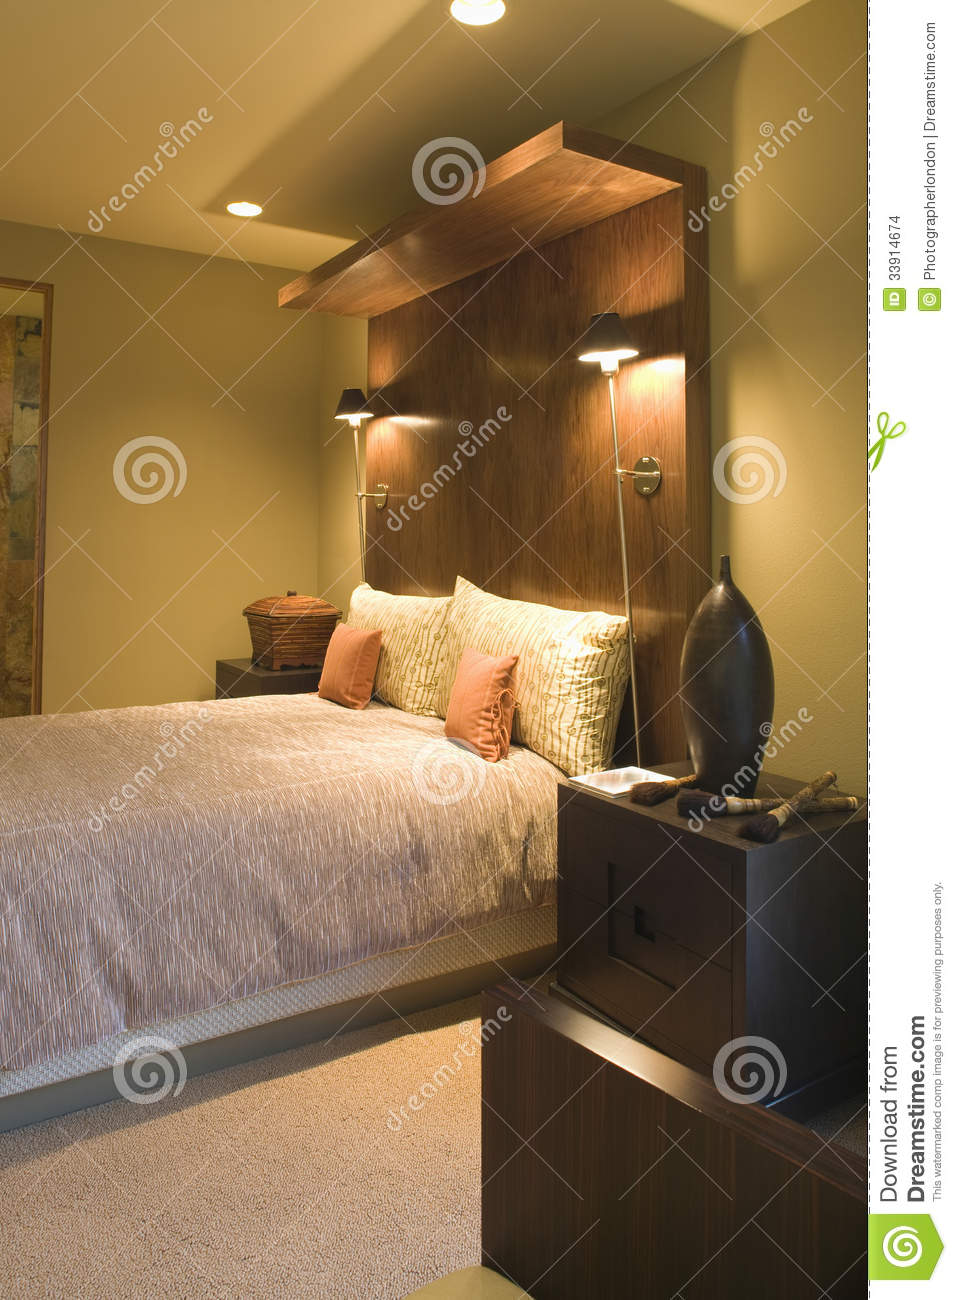 double bed with wooden headboard stock photo image of pillow lighting 33914674